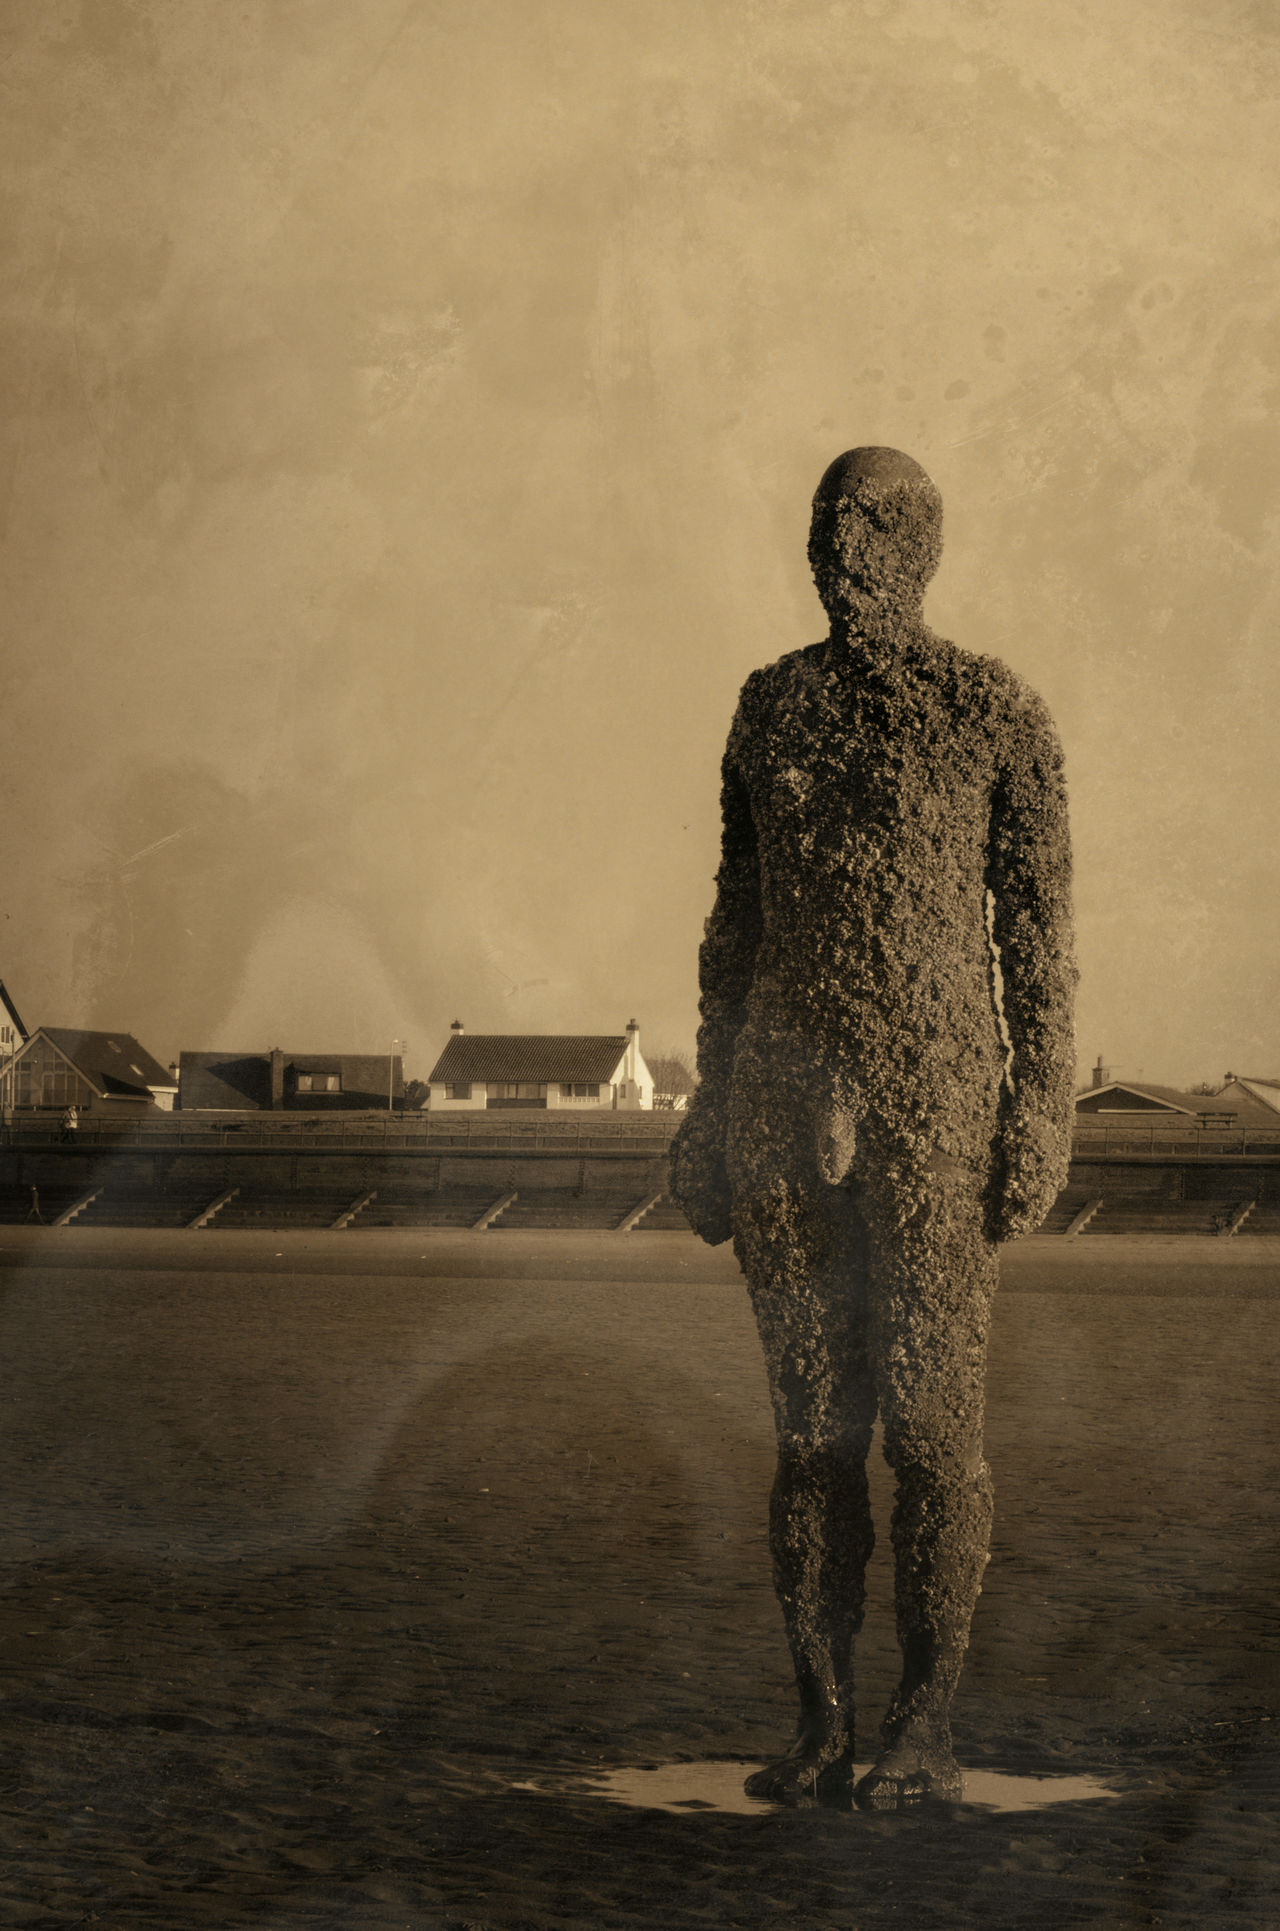 Anthony Gormleys Another Place Art Day Full Length Gormley Men Outdoors People Standing Statue Water Crosby Beach